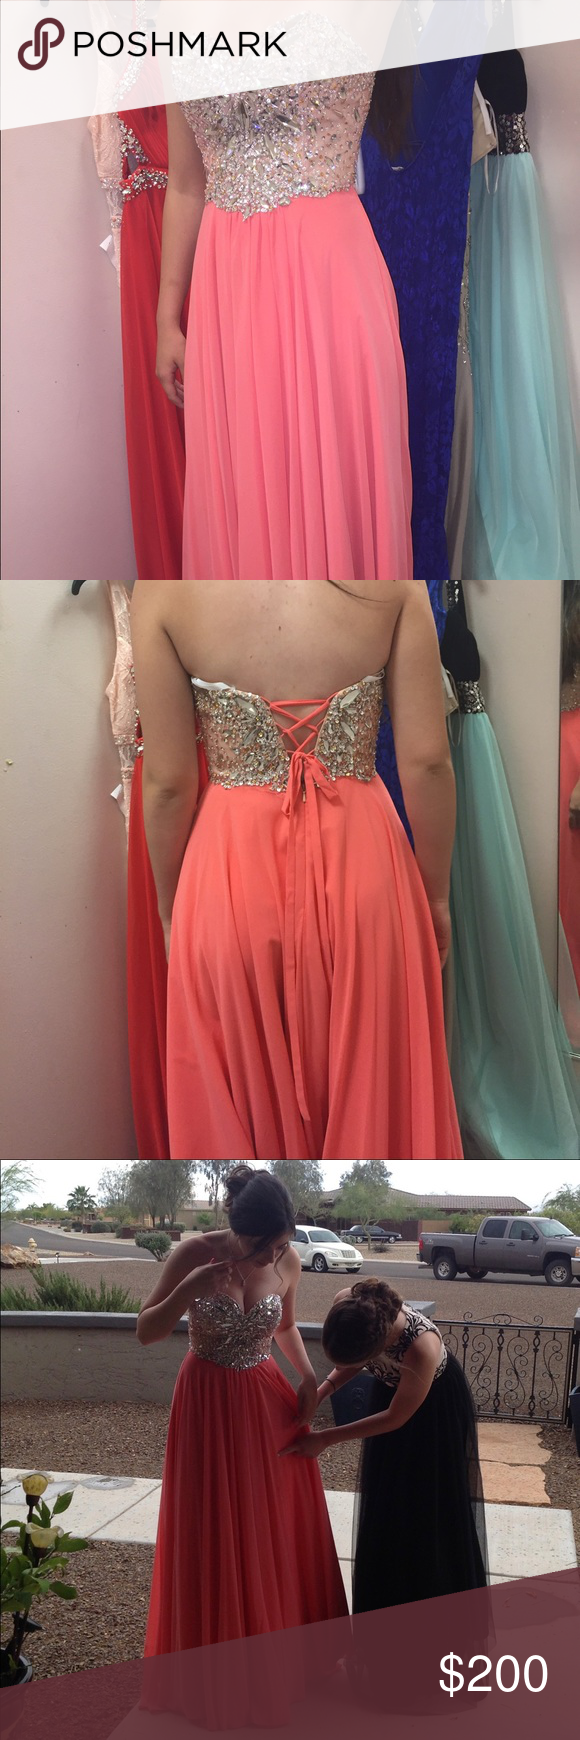 Gorgeous coral colored prom dress | Coral color, Prom and Corset